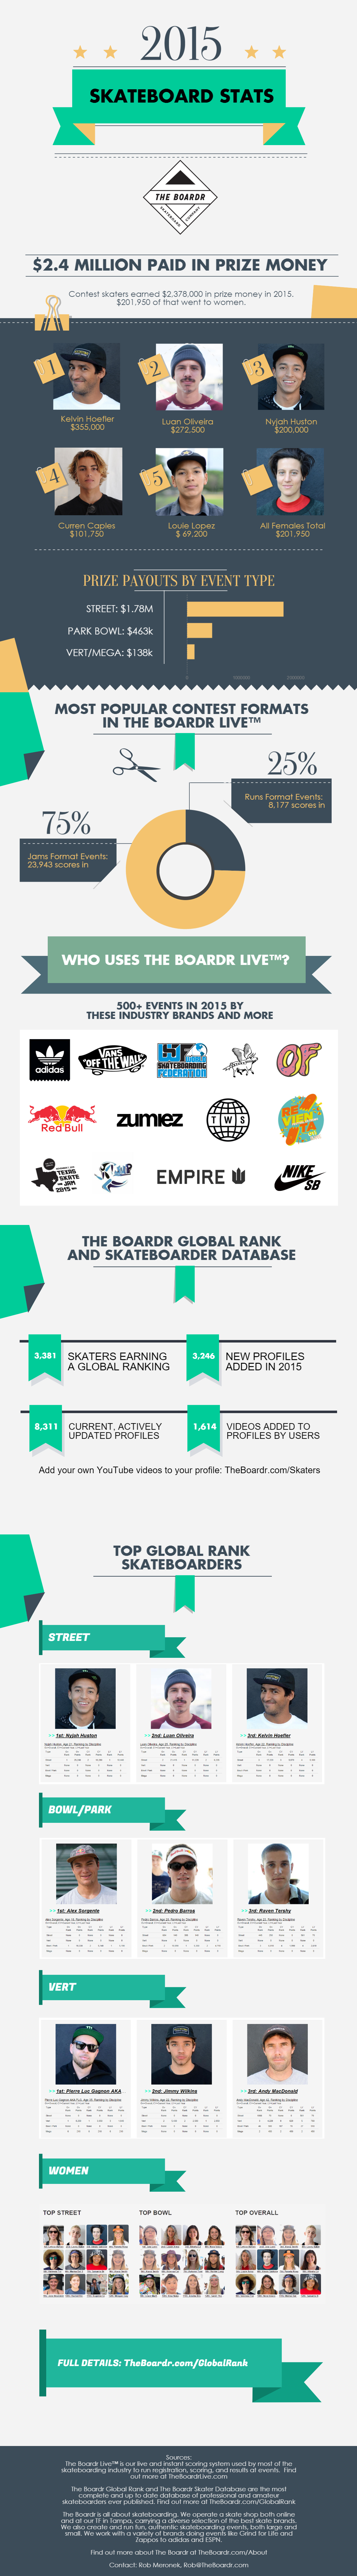 Skateboarding Industry Statistics and Contest Earnings 2015, Global Rankings